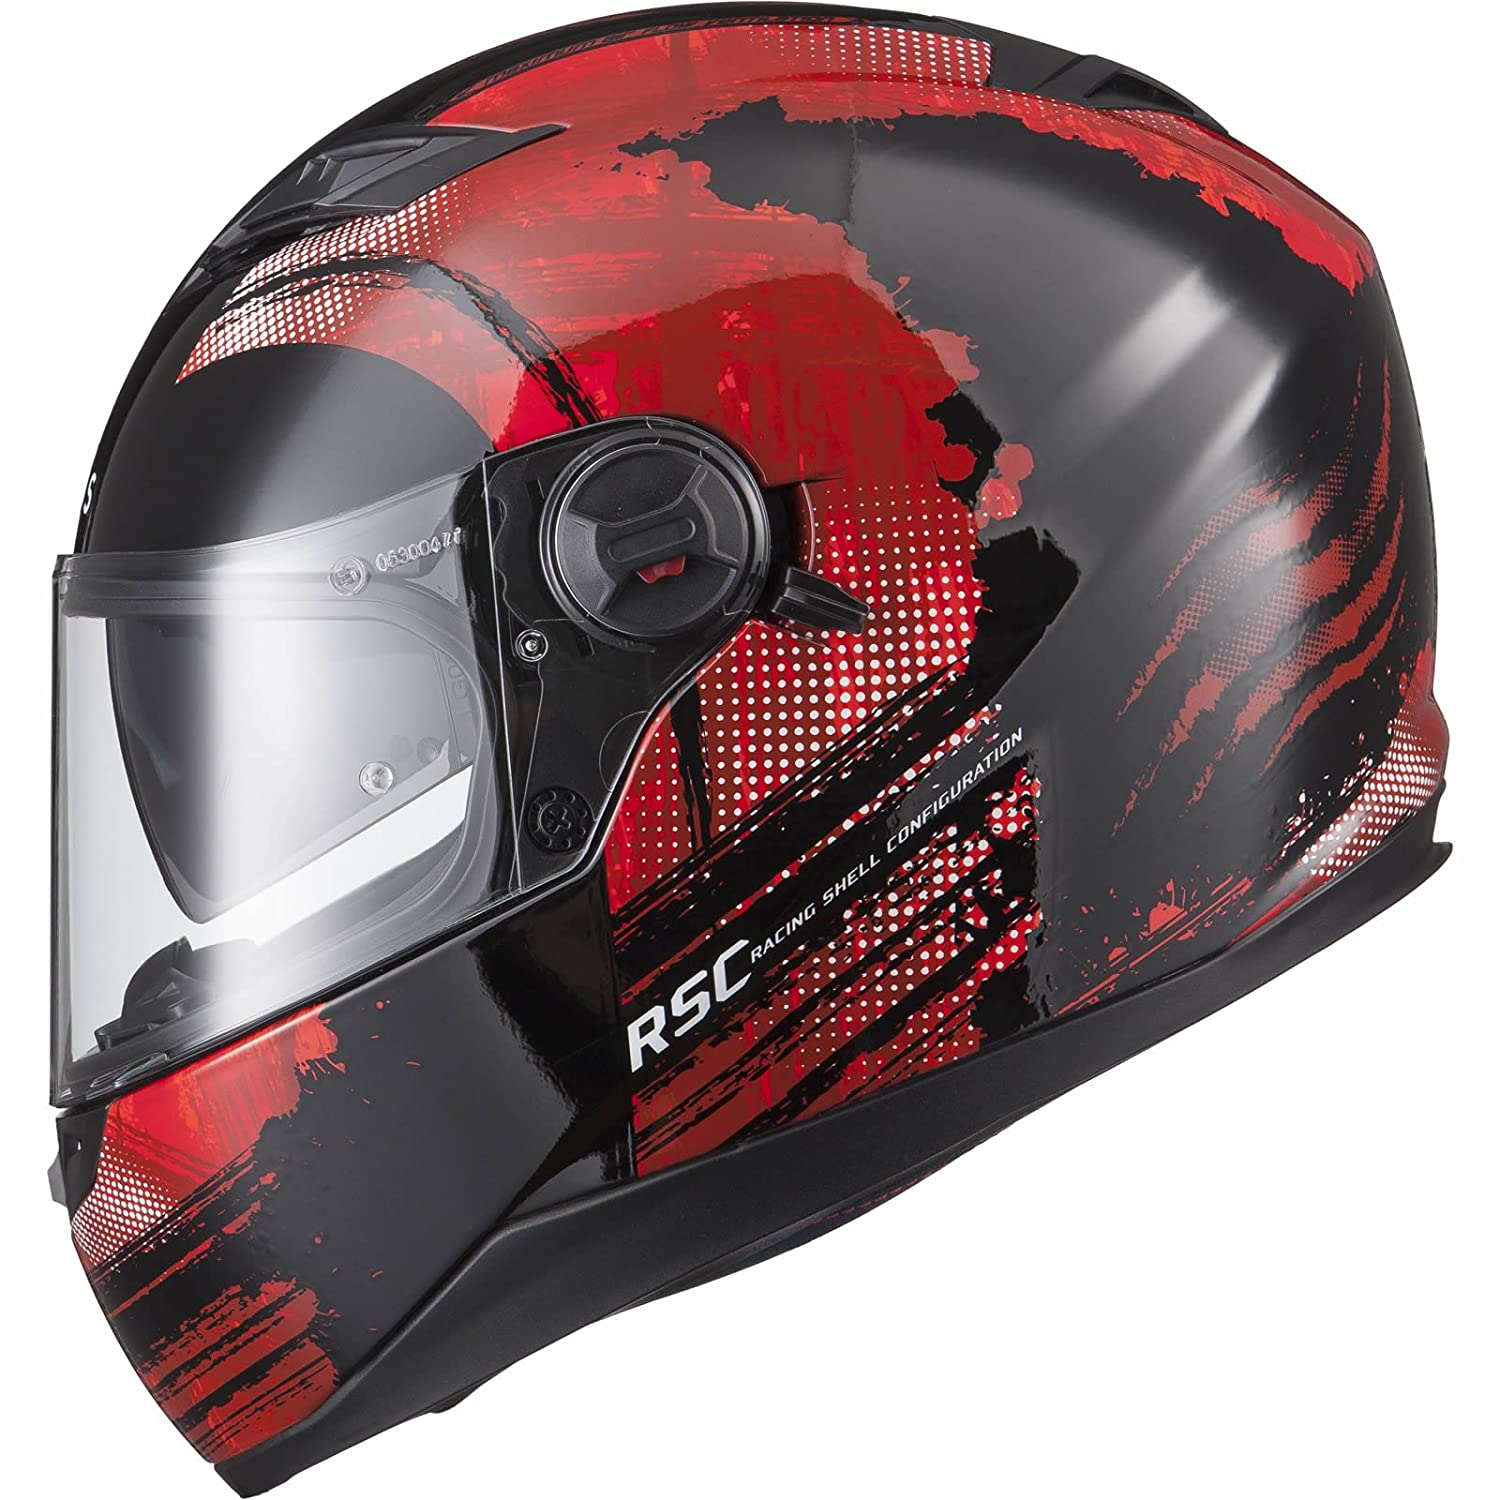 Agrius Rage SV Claw Motorcycle Helmet S Gloss Black//Red